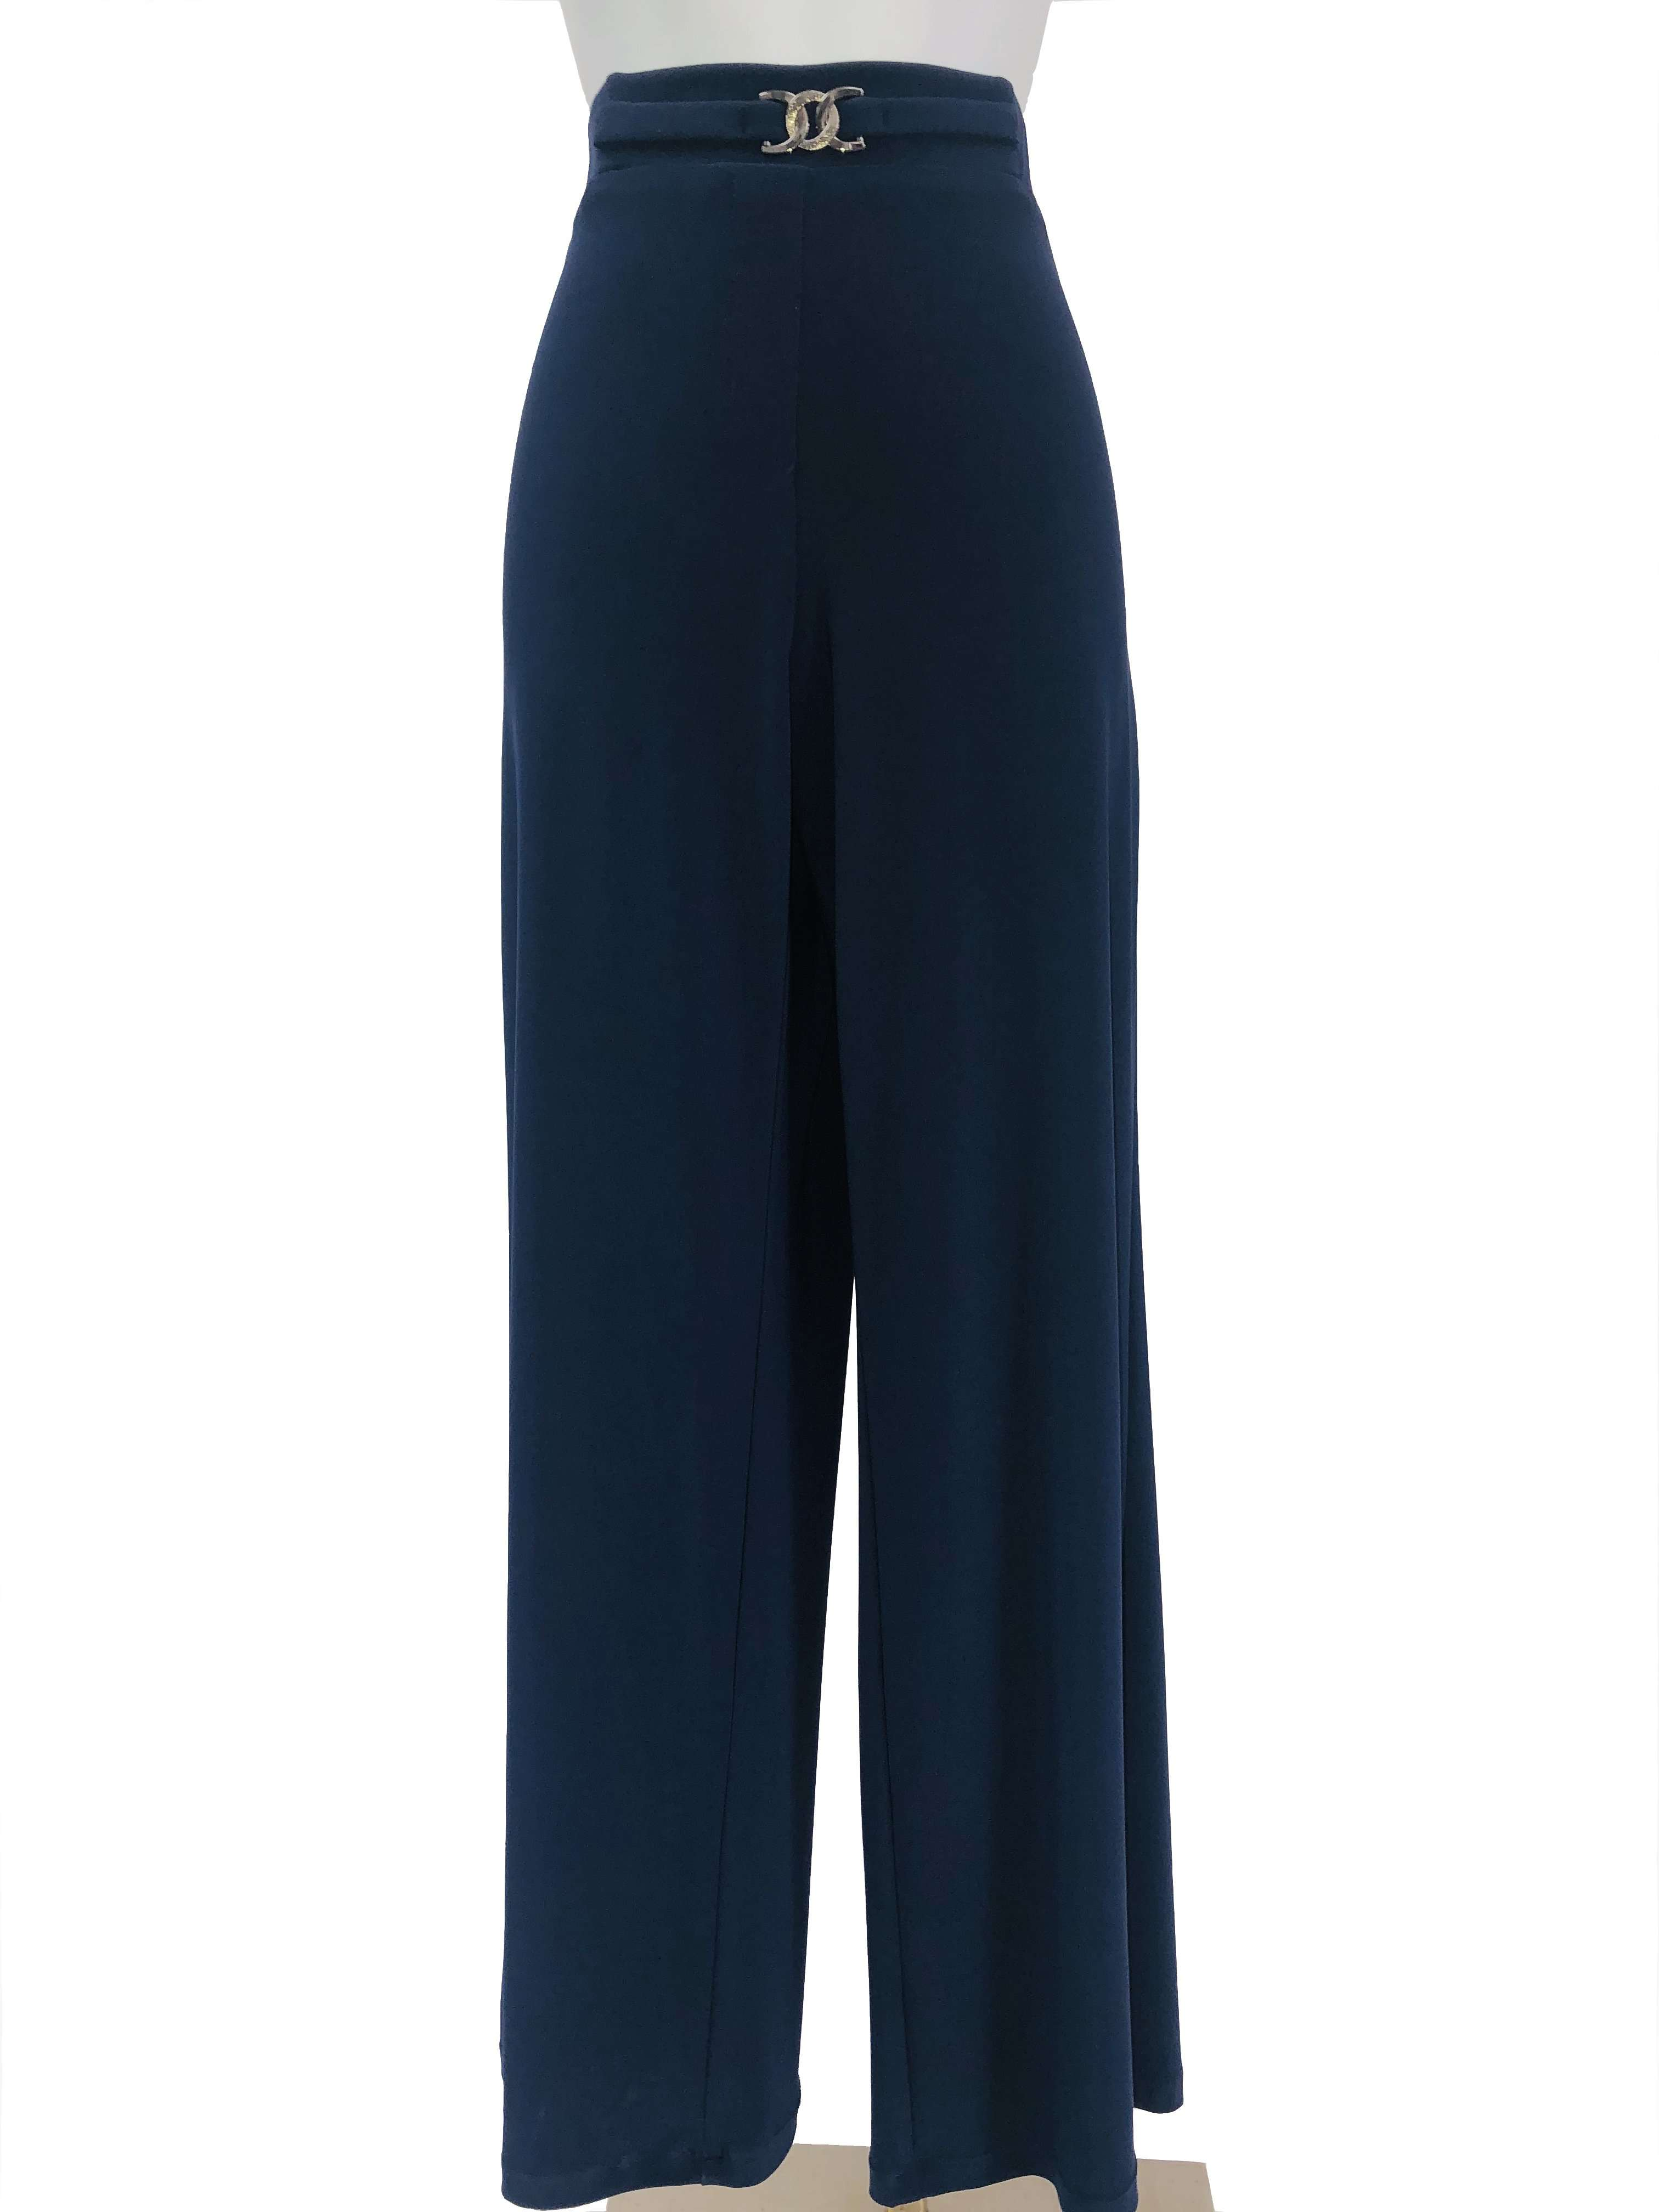 Women's Navy Stretch Pants - Yvonne Marie